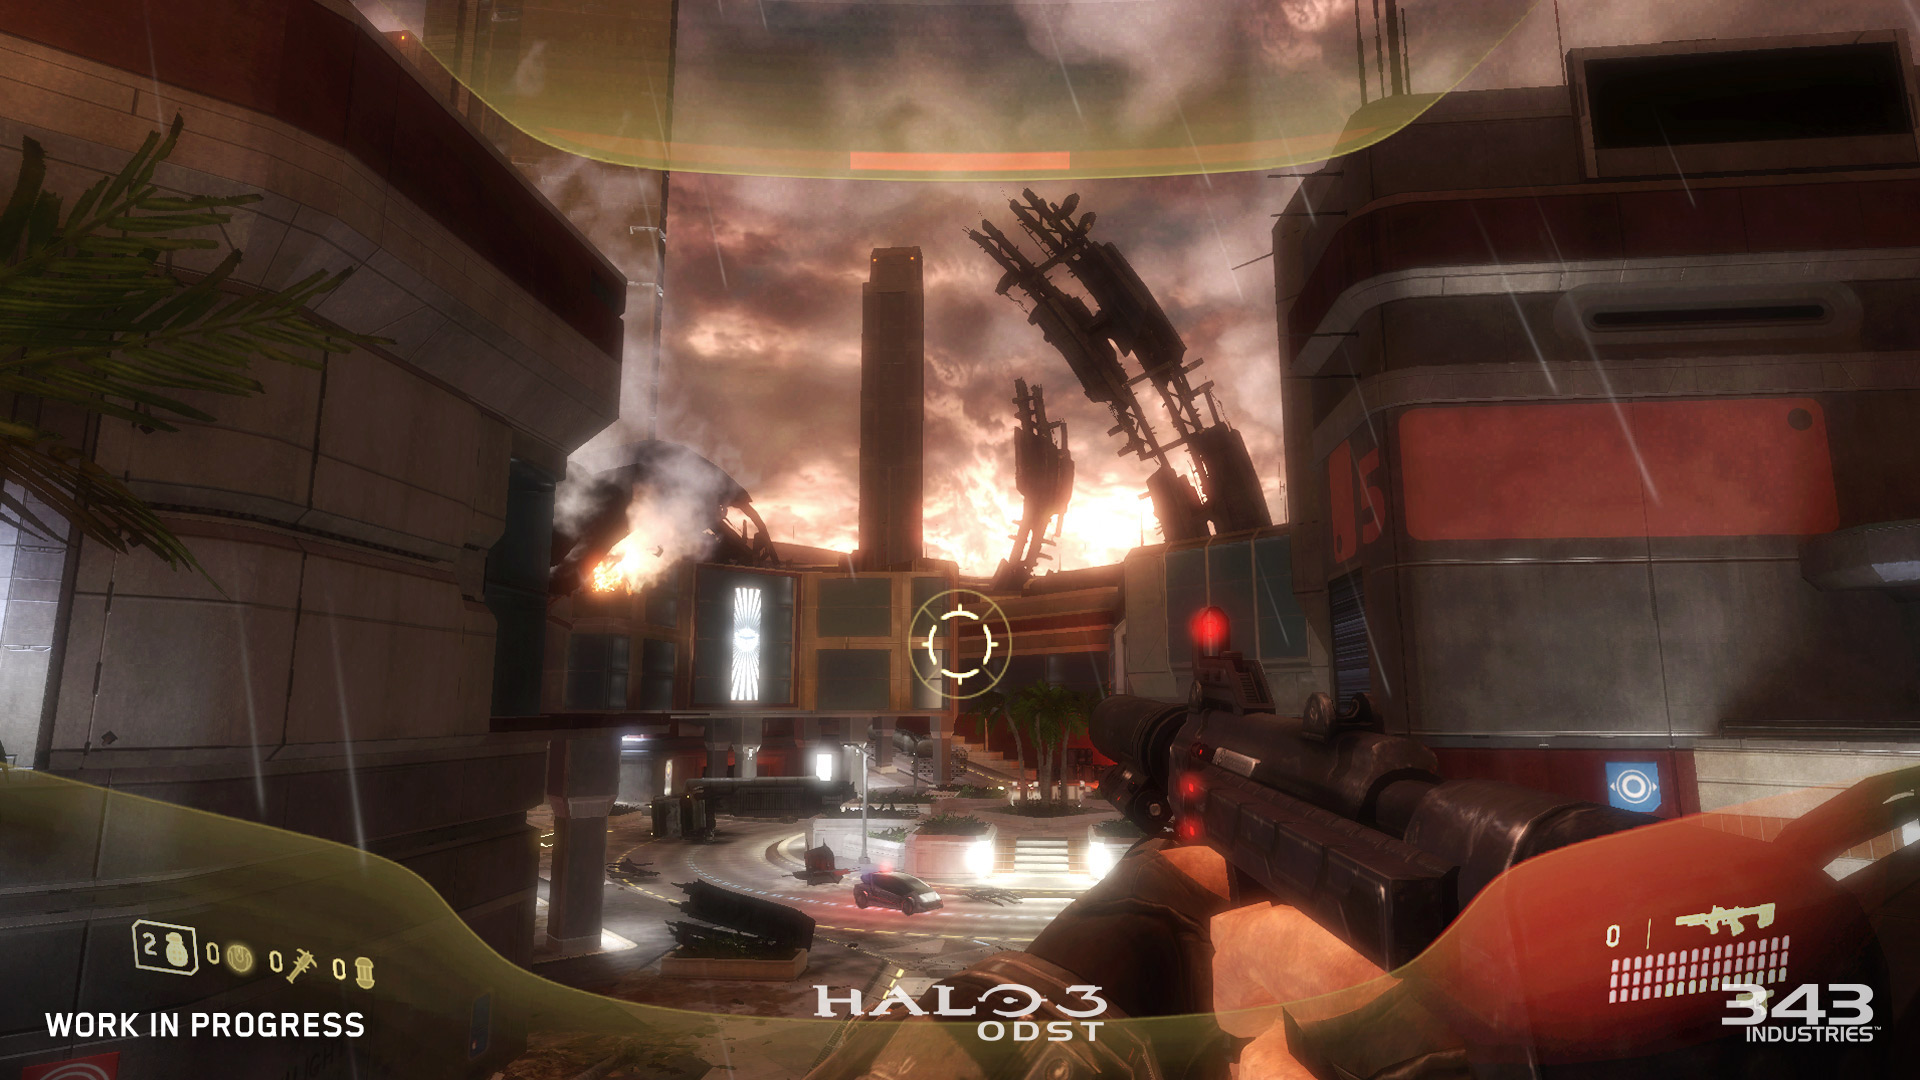 File_10531_halo the master chief collection odst plaza 57e9952a83574ef8b87f5d19df5150ee